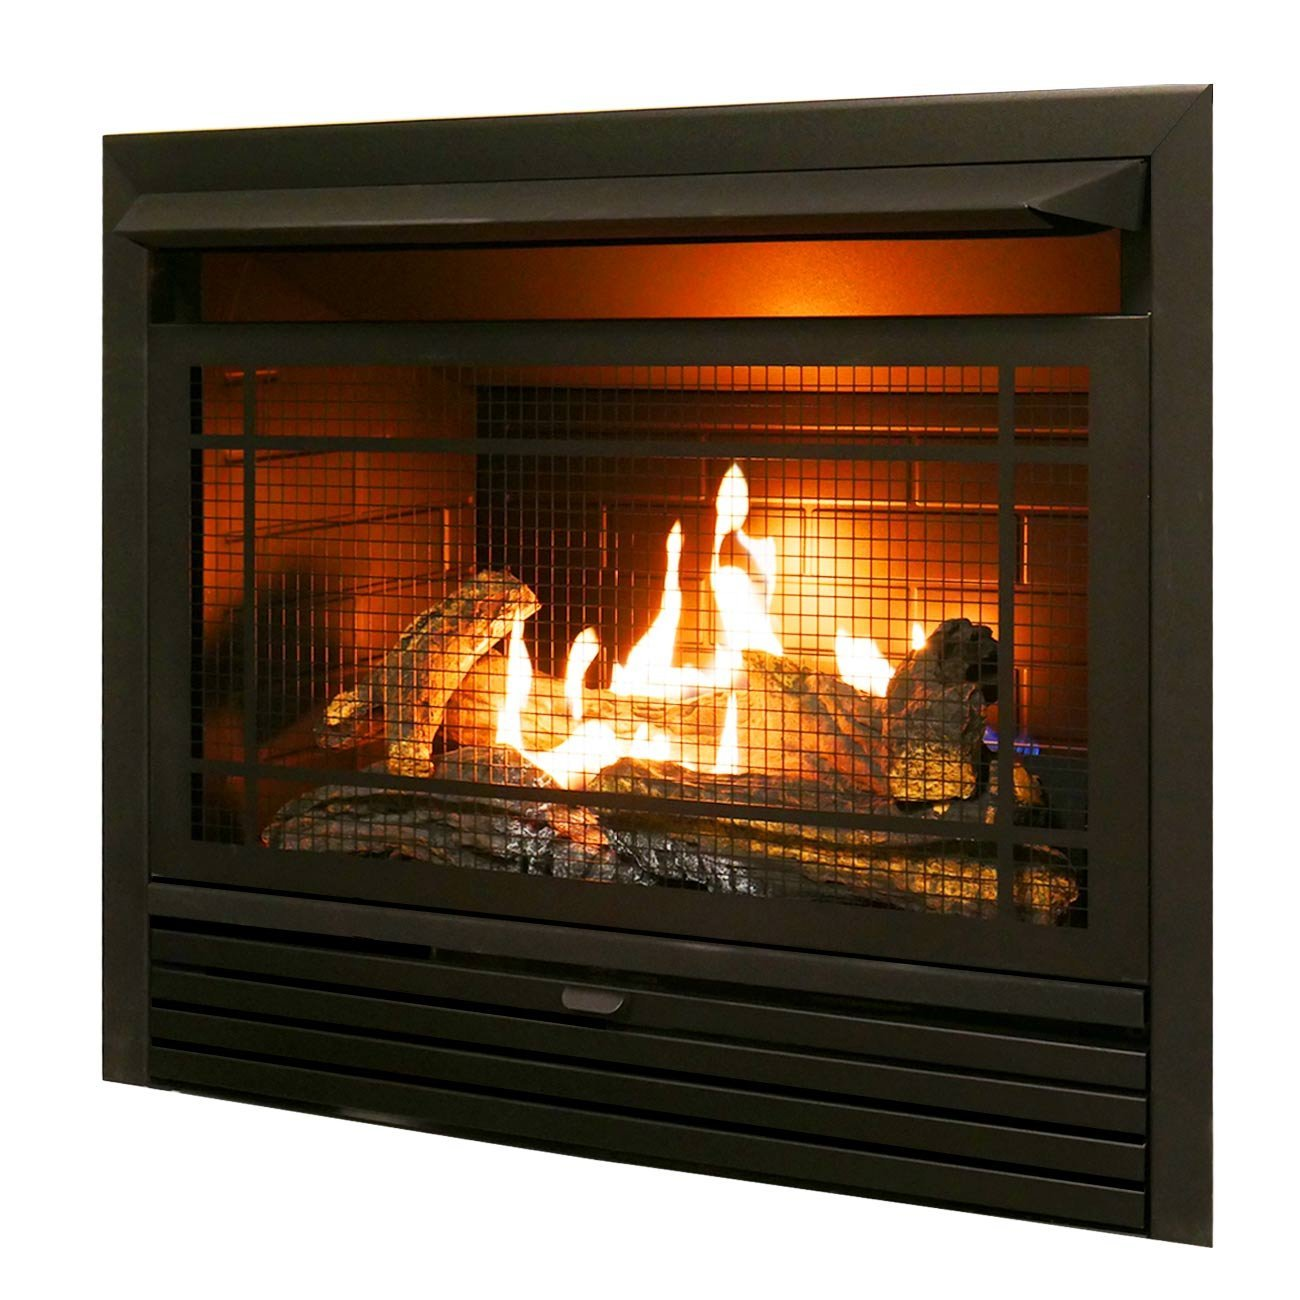 Duluth Forge Dual Fuel Ventless Insert-26,000 BTU, T-Stat Control Gas Fireplace, Black by Duluth Forge